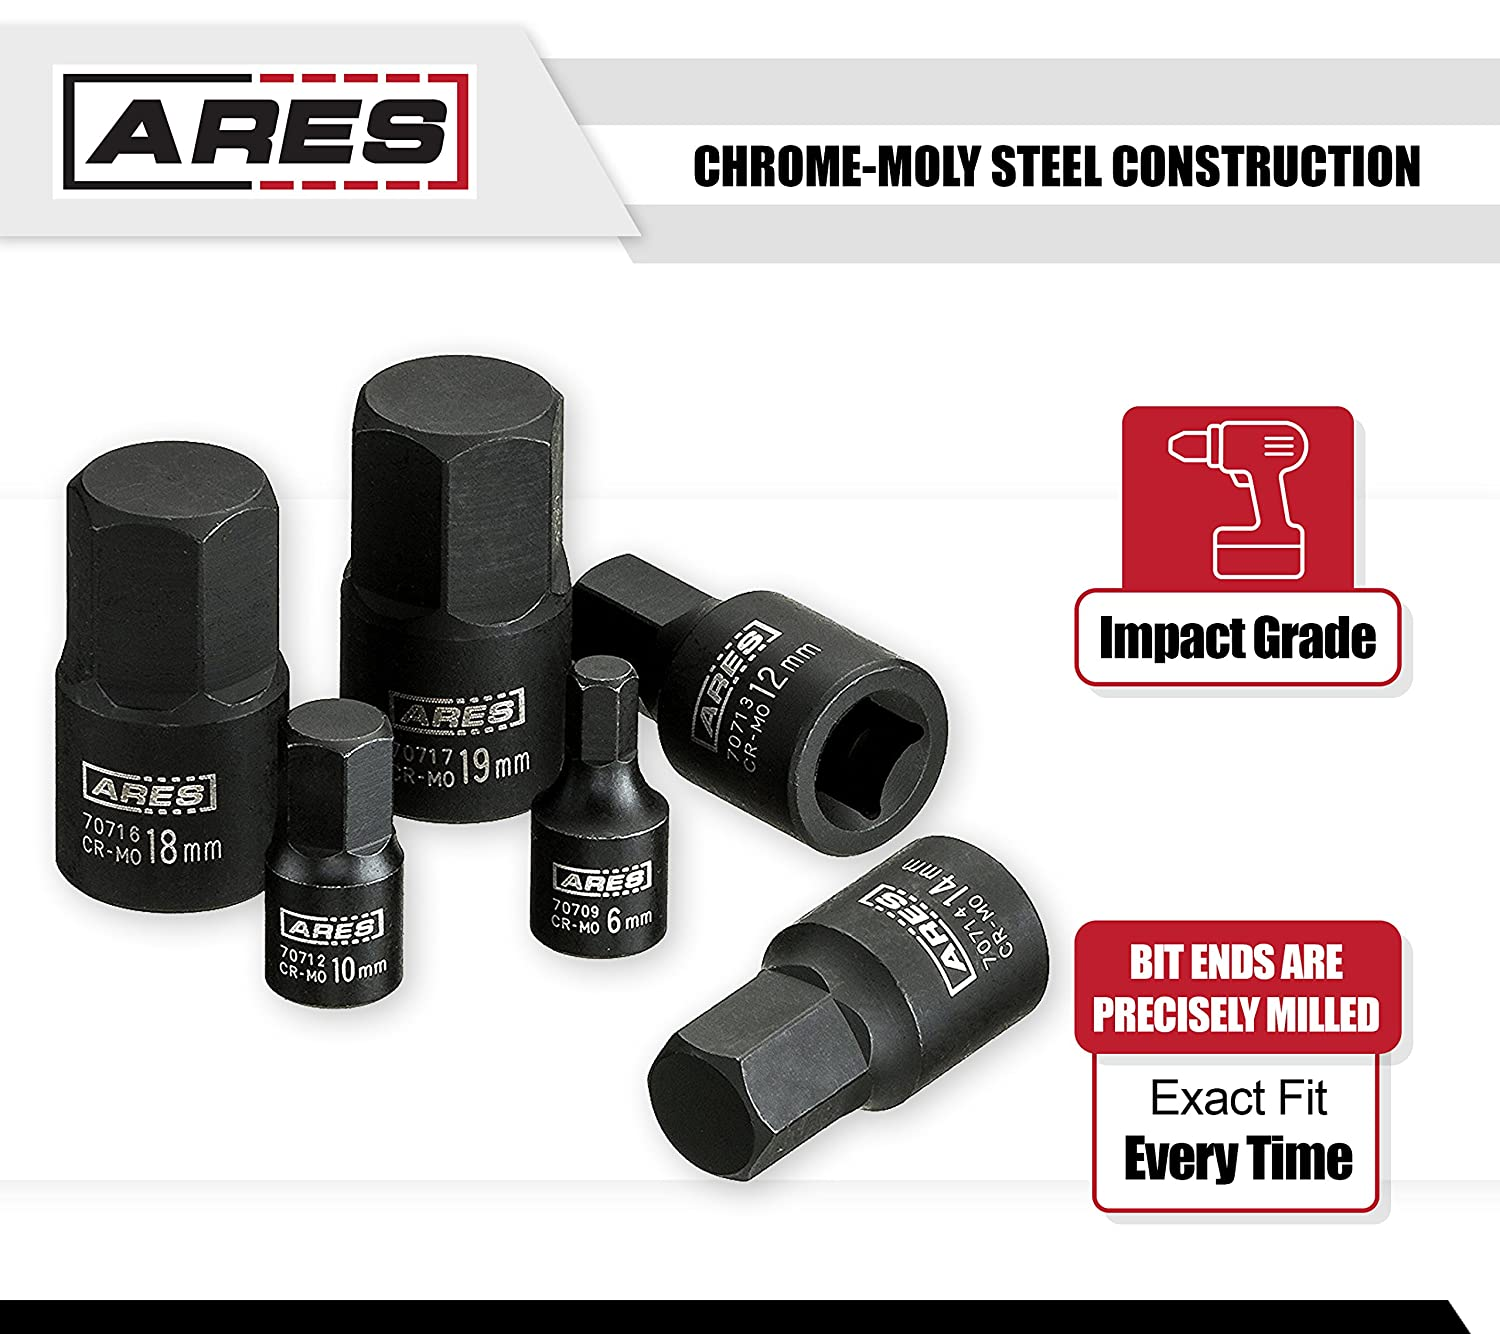 Low Profile and Designed for Impact Use ARES 70496 Includes Storage Rail 9-Piece SAE Impact Hex Driver Socket Set Chrome Moly Steel Construction and Manganese Phosphate Coating